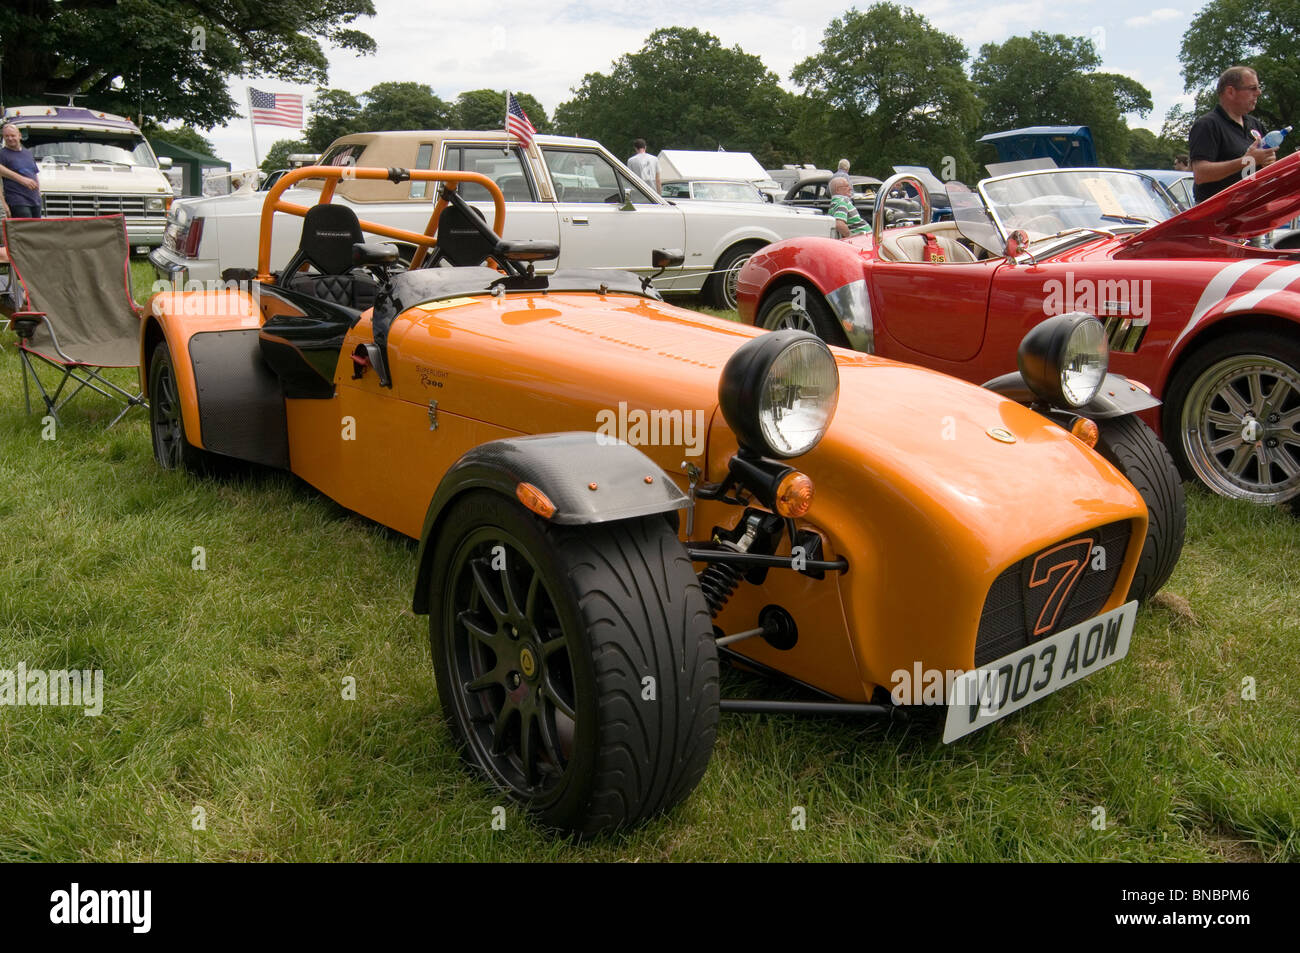 caterham 7 seven lotus light lightweight sport sports trackday track day classic car cars show shows showing competition - Stock Image